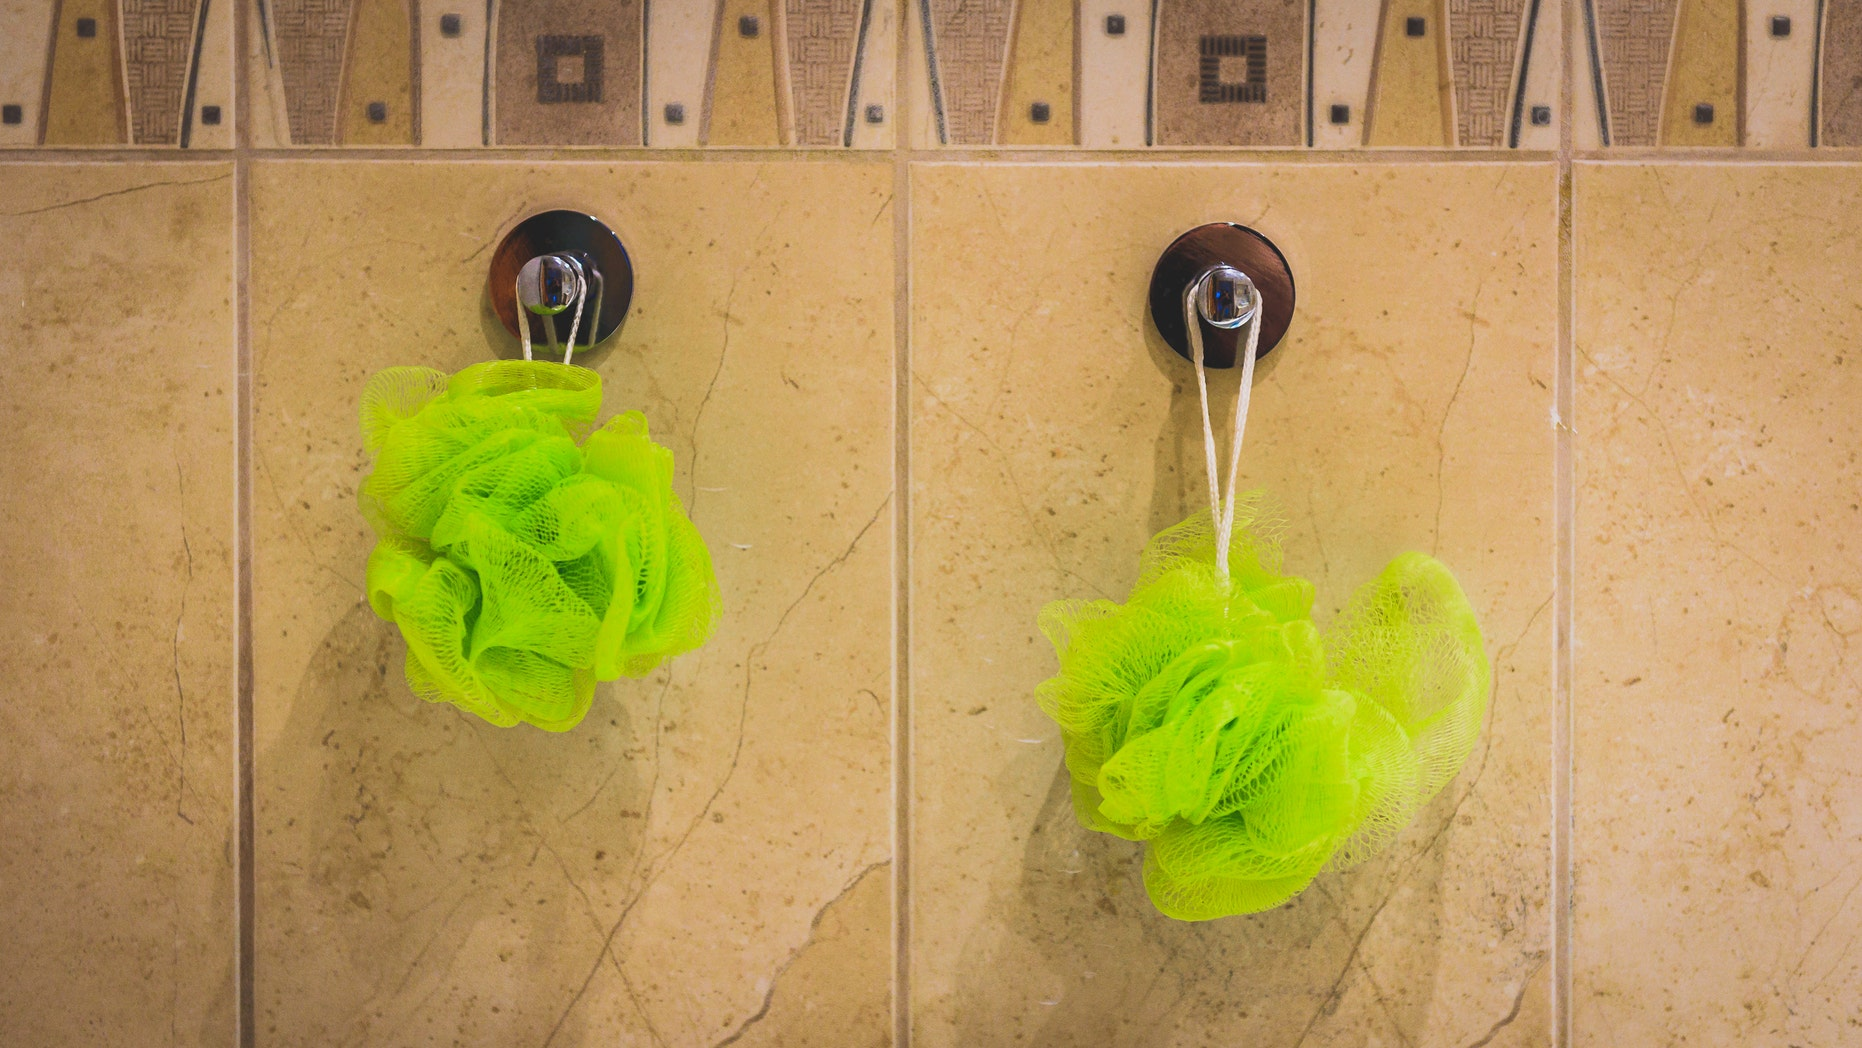 Two green bath sponges hanging from the bathroom wall. Bath accessories hanging from bathroom tiles.